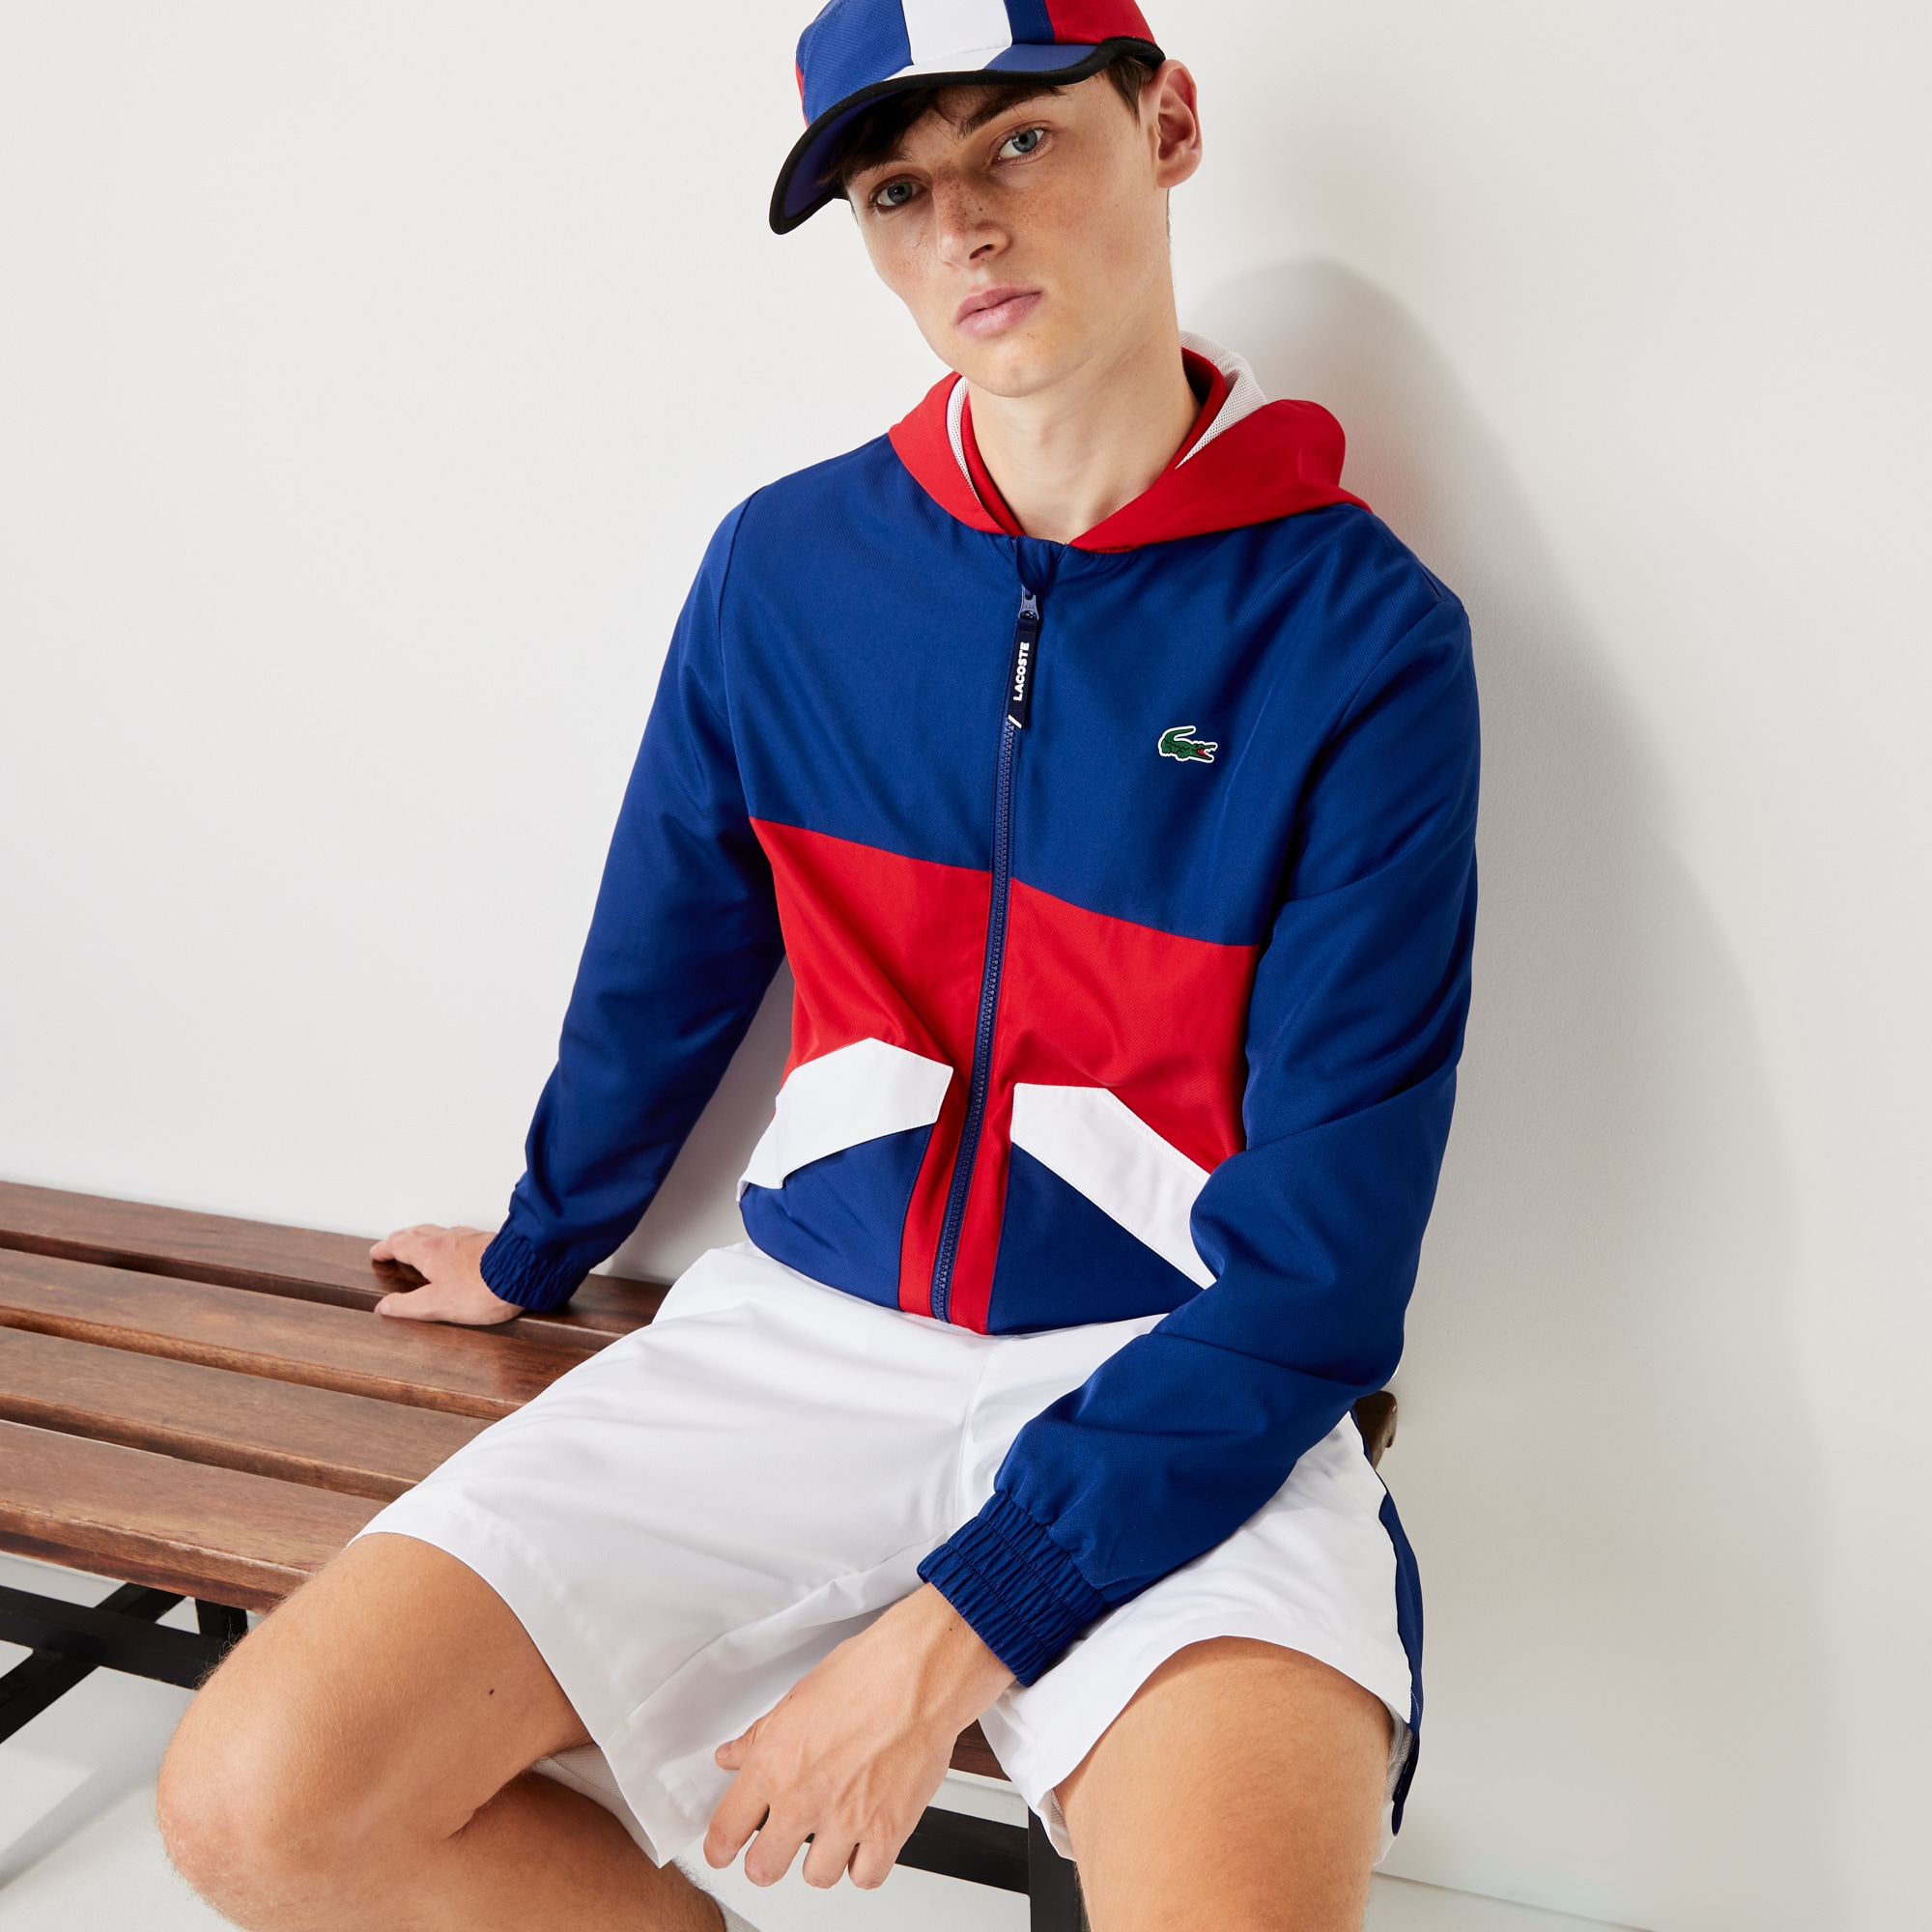 라코스테 스포츠 후드티 Mens Lacoste SPORT Hooded Water-Resistant Colourblock Jacket